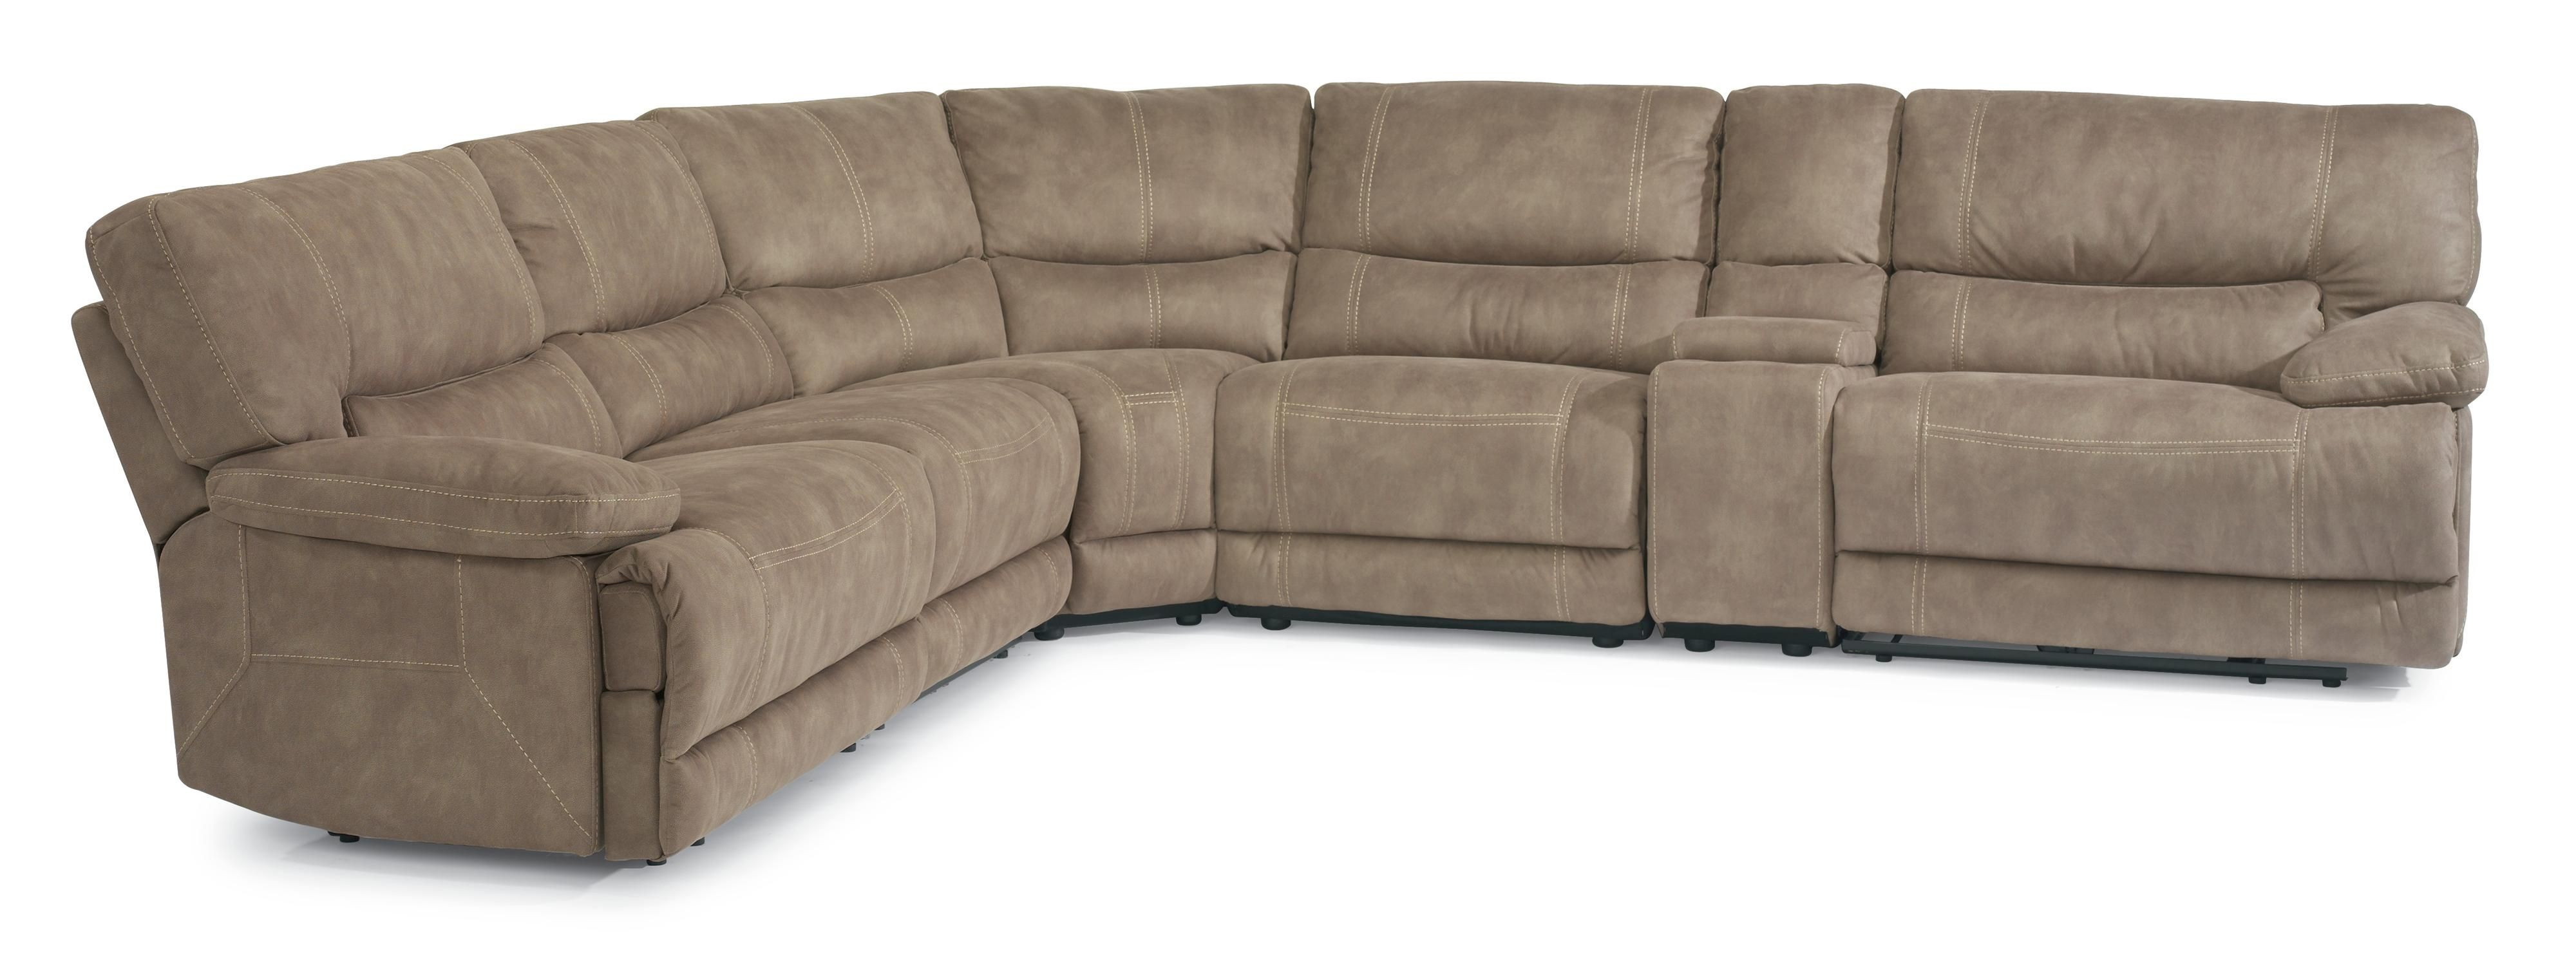 Latitudes Delia Reclining Sectional Sofa By Flexsteel Reclining Sectional Power Reclining Sectional Sofa Flexsteel Furniture